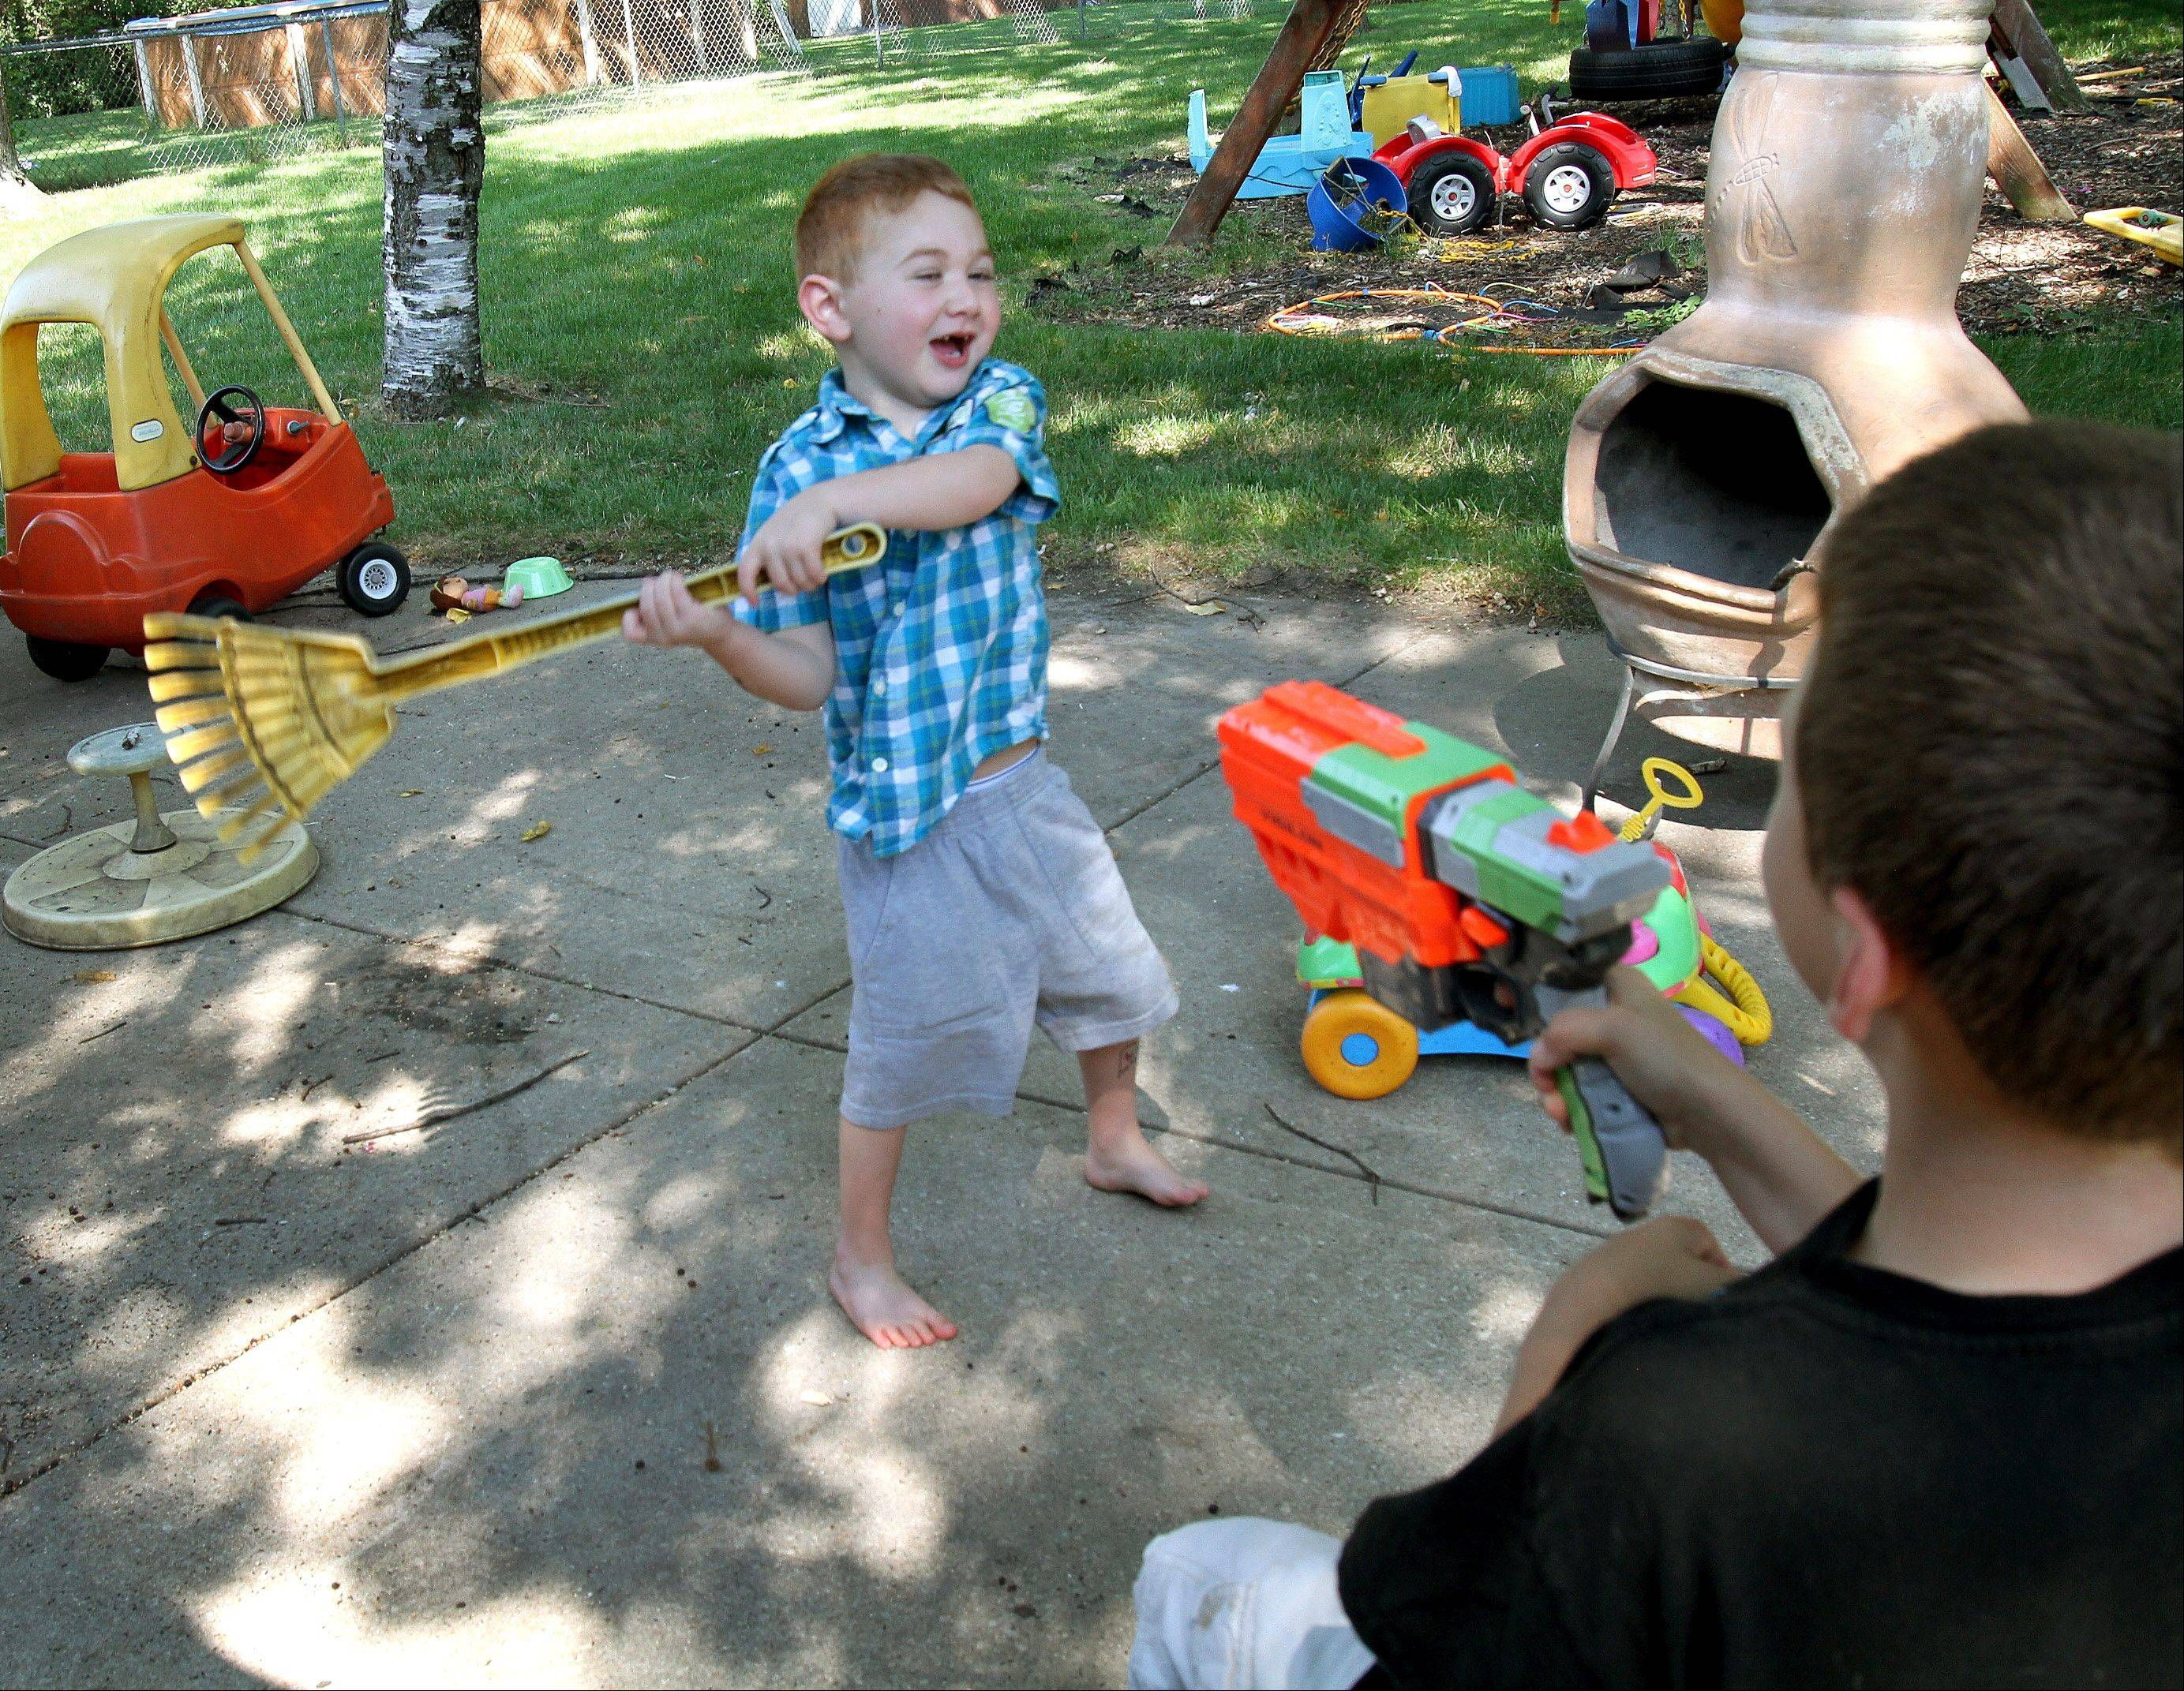 Heart transplant recipient Tim Grobart, 5, plays with his 8-year-old brother, Lou, at the family's Lombard home. Tim returned home from the hospital July 26 and has been more active than usual since receiving his new heart.